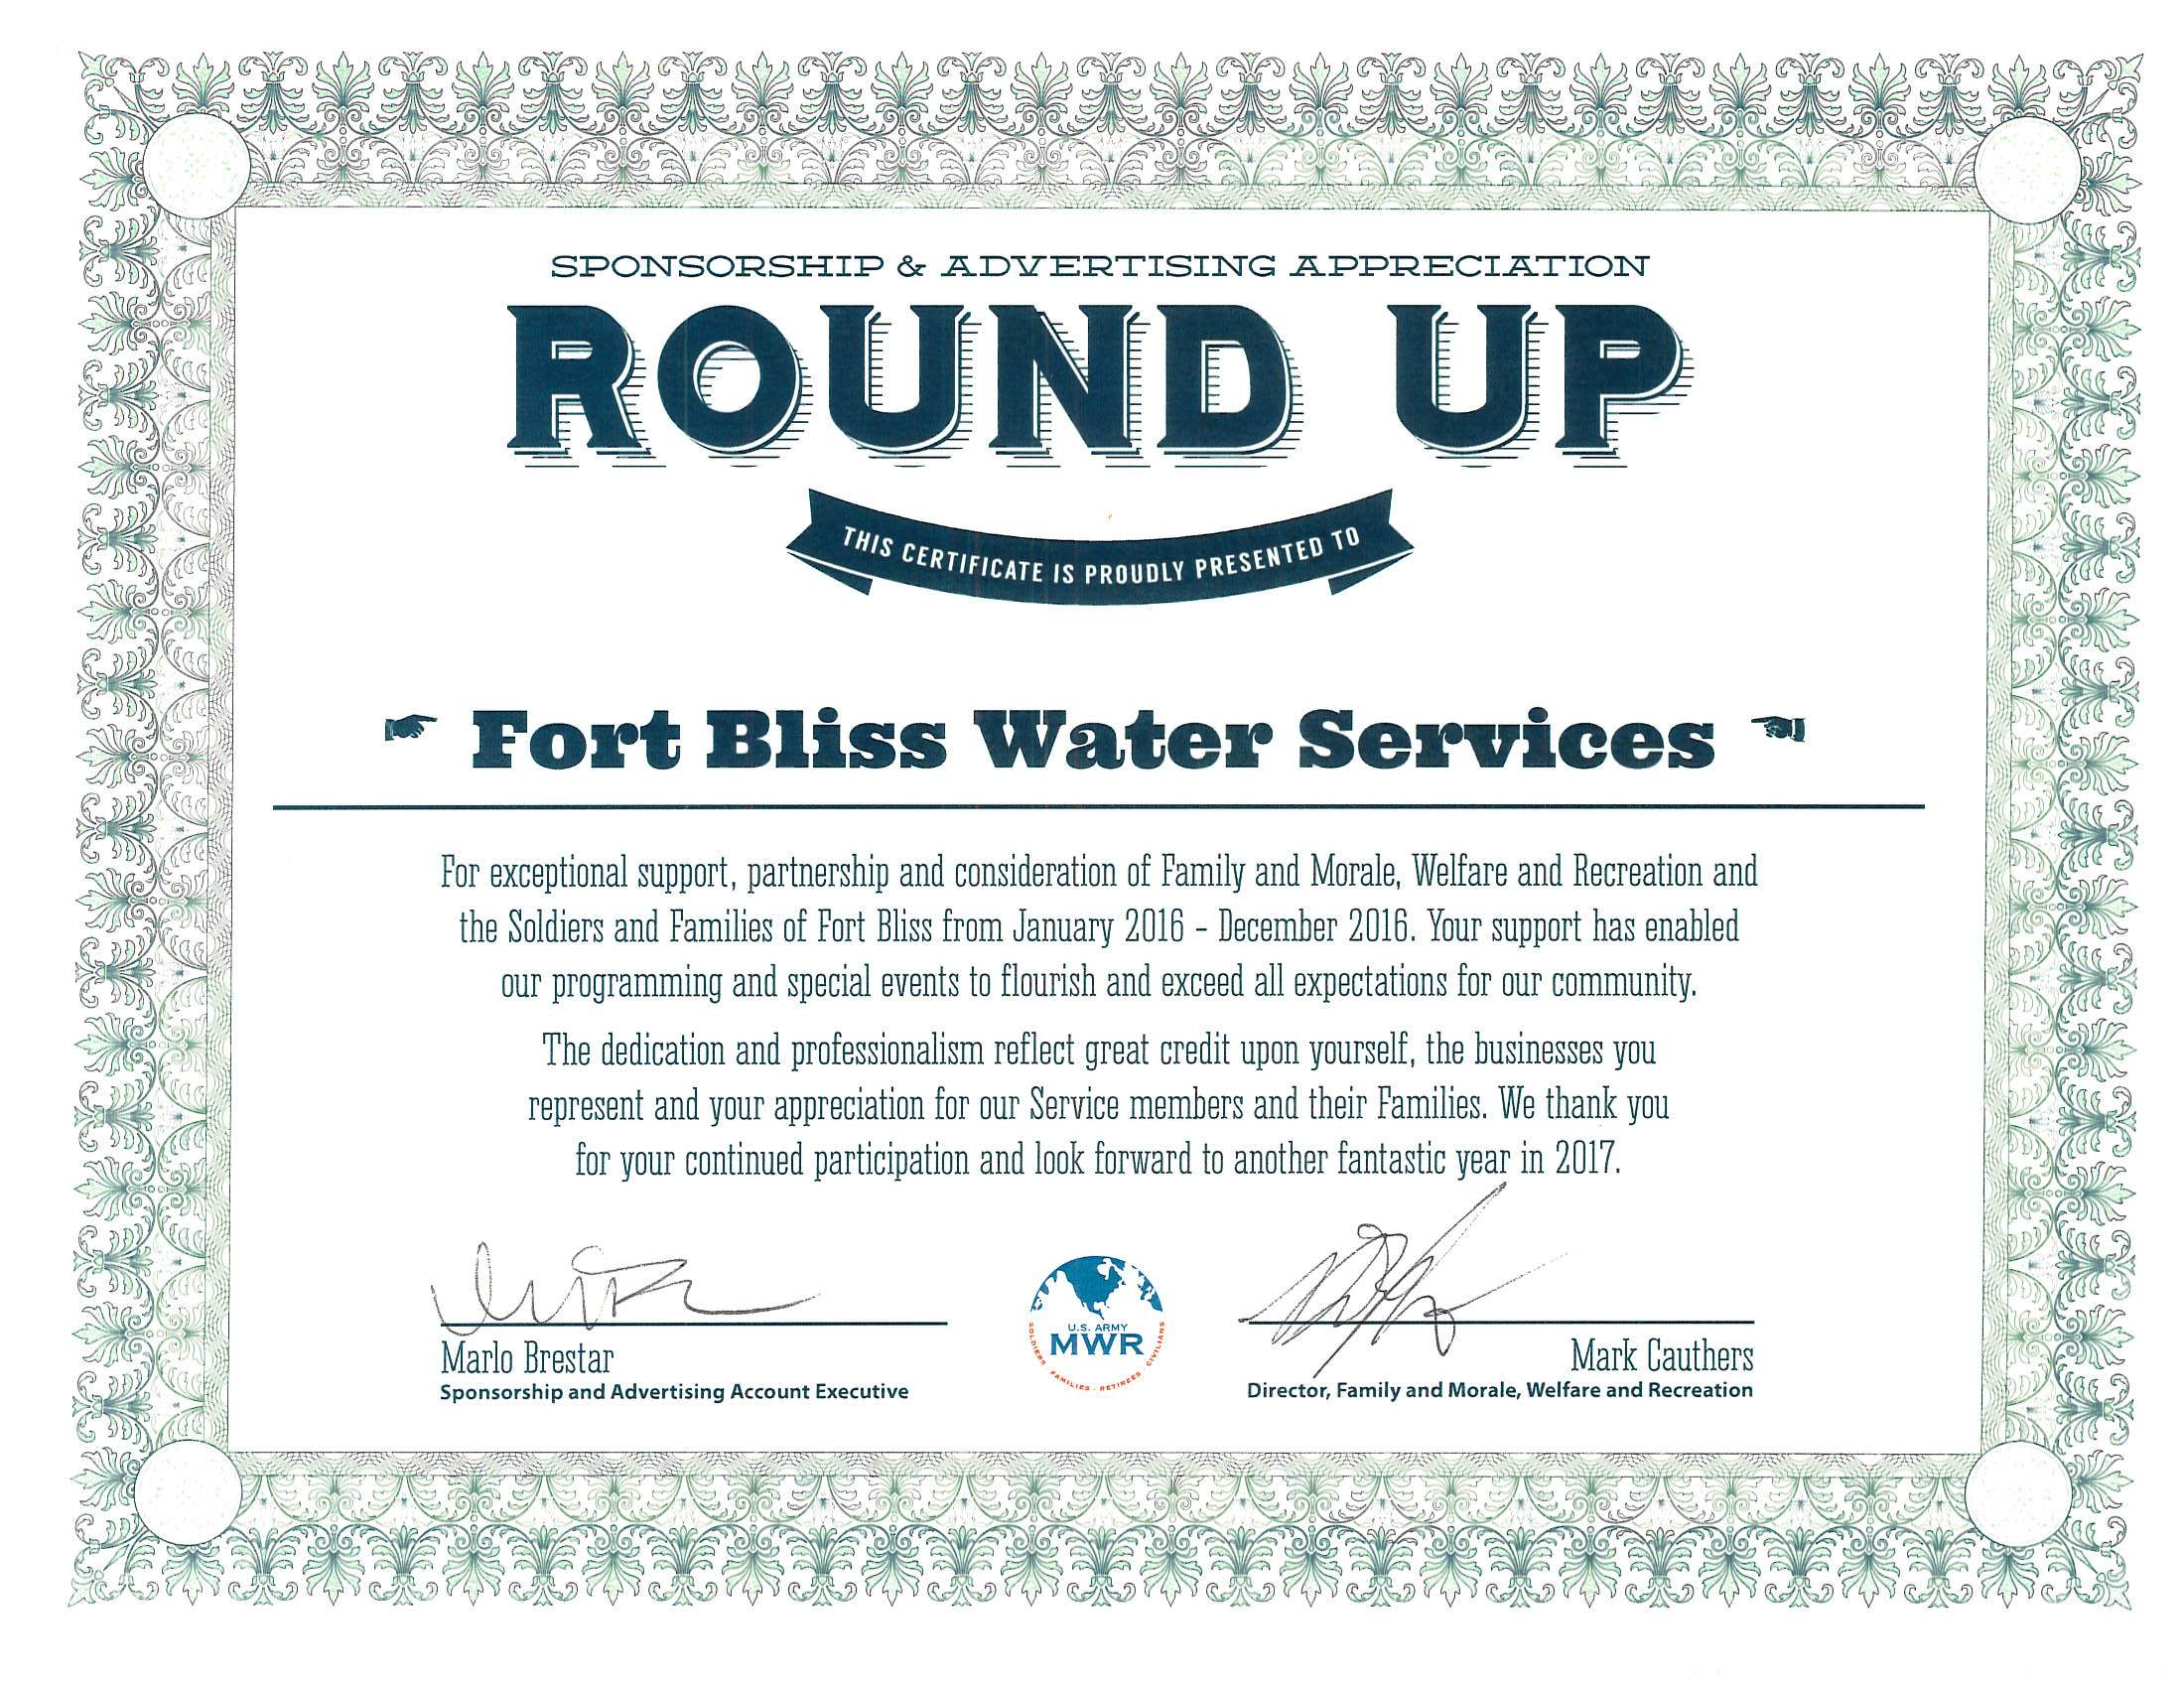 Fort Bliss Water Services Company honored by local MWR